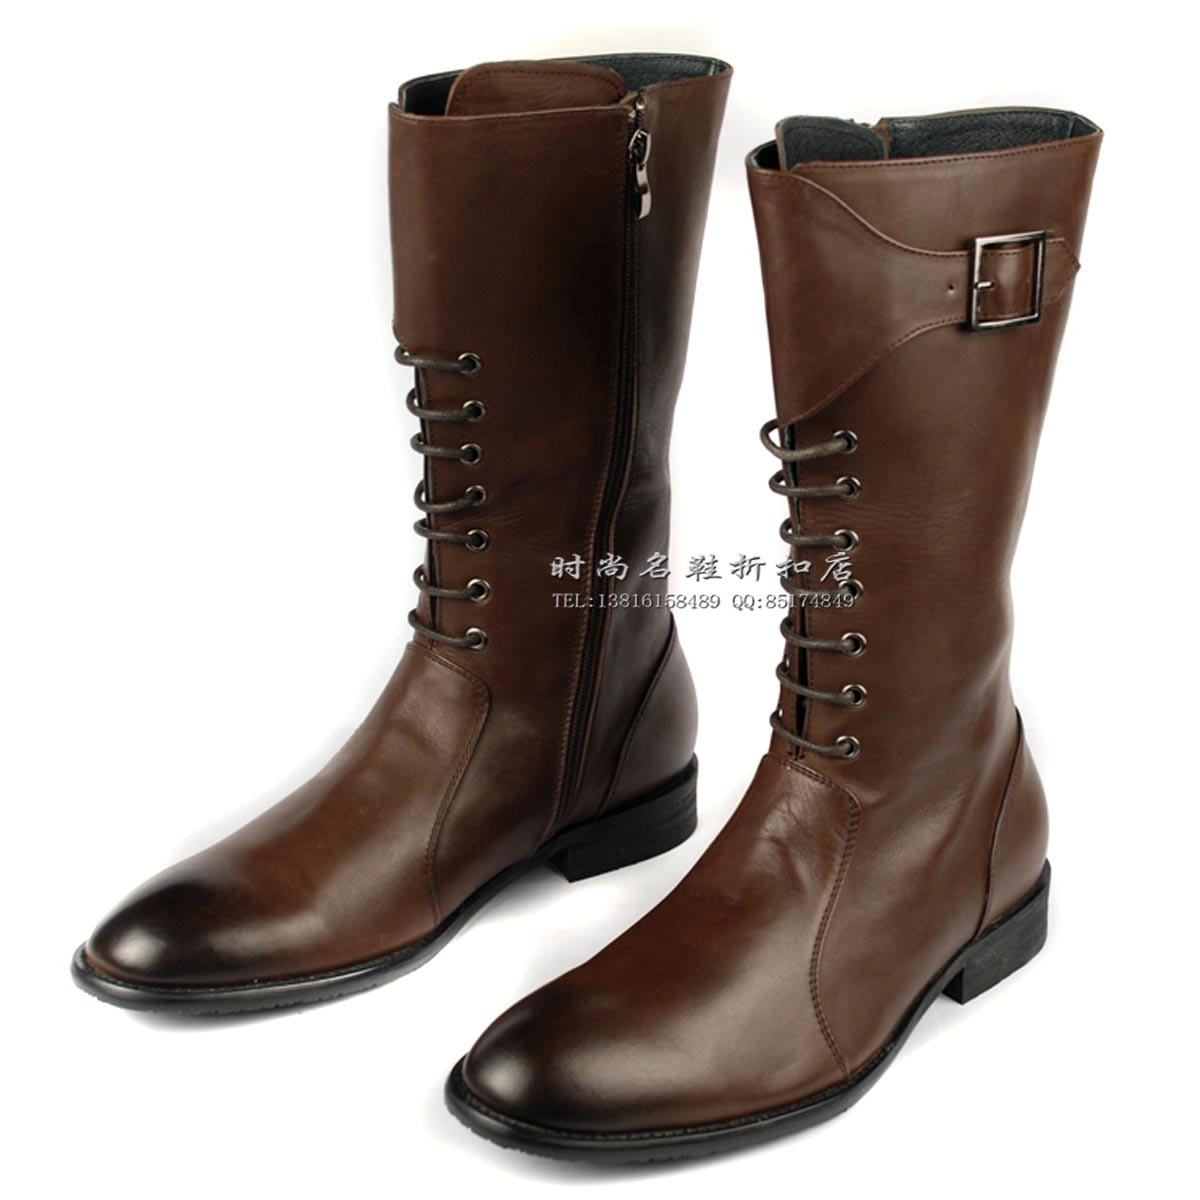 Fashion boots high leg trend men's genuine leather riding ...